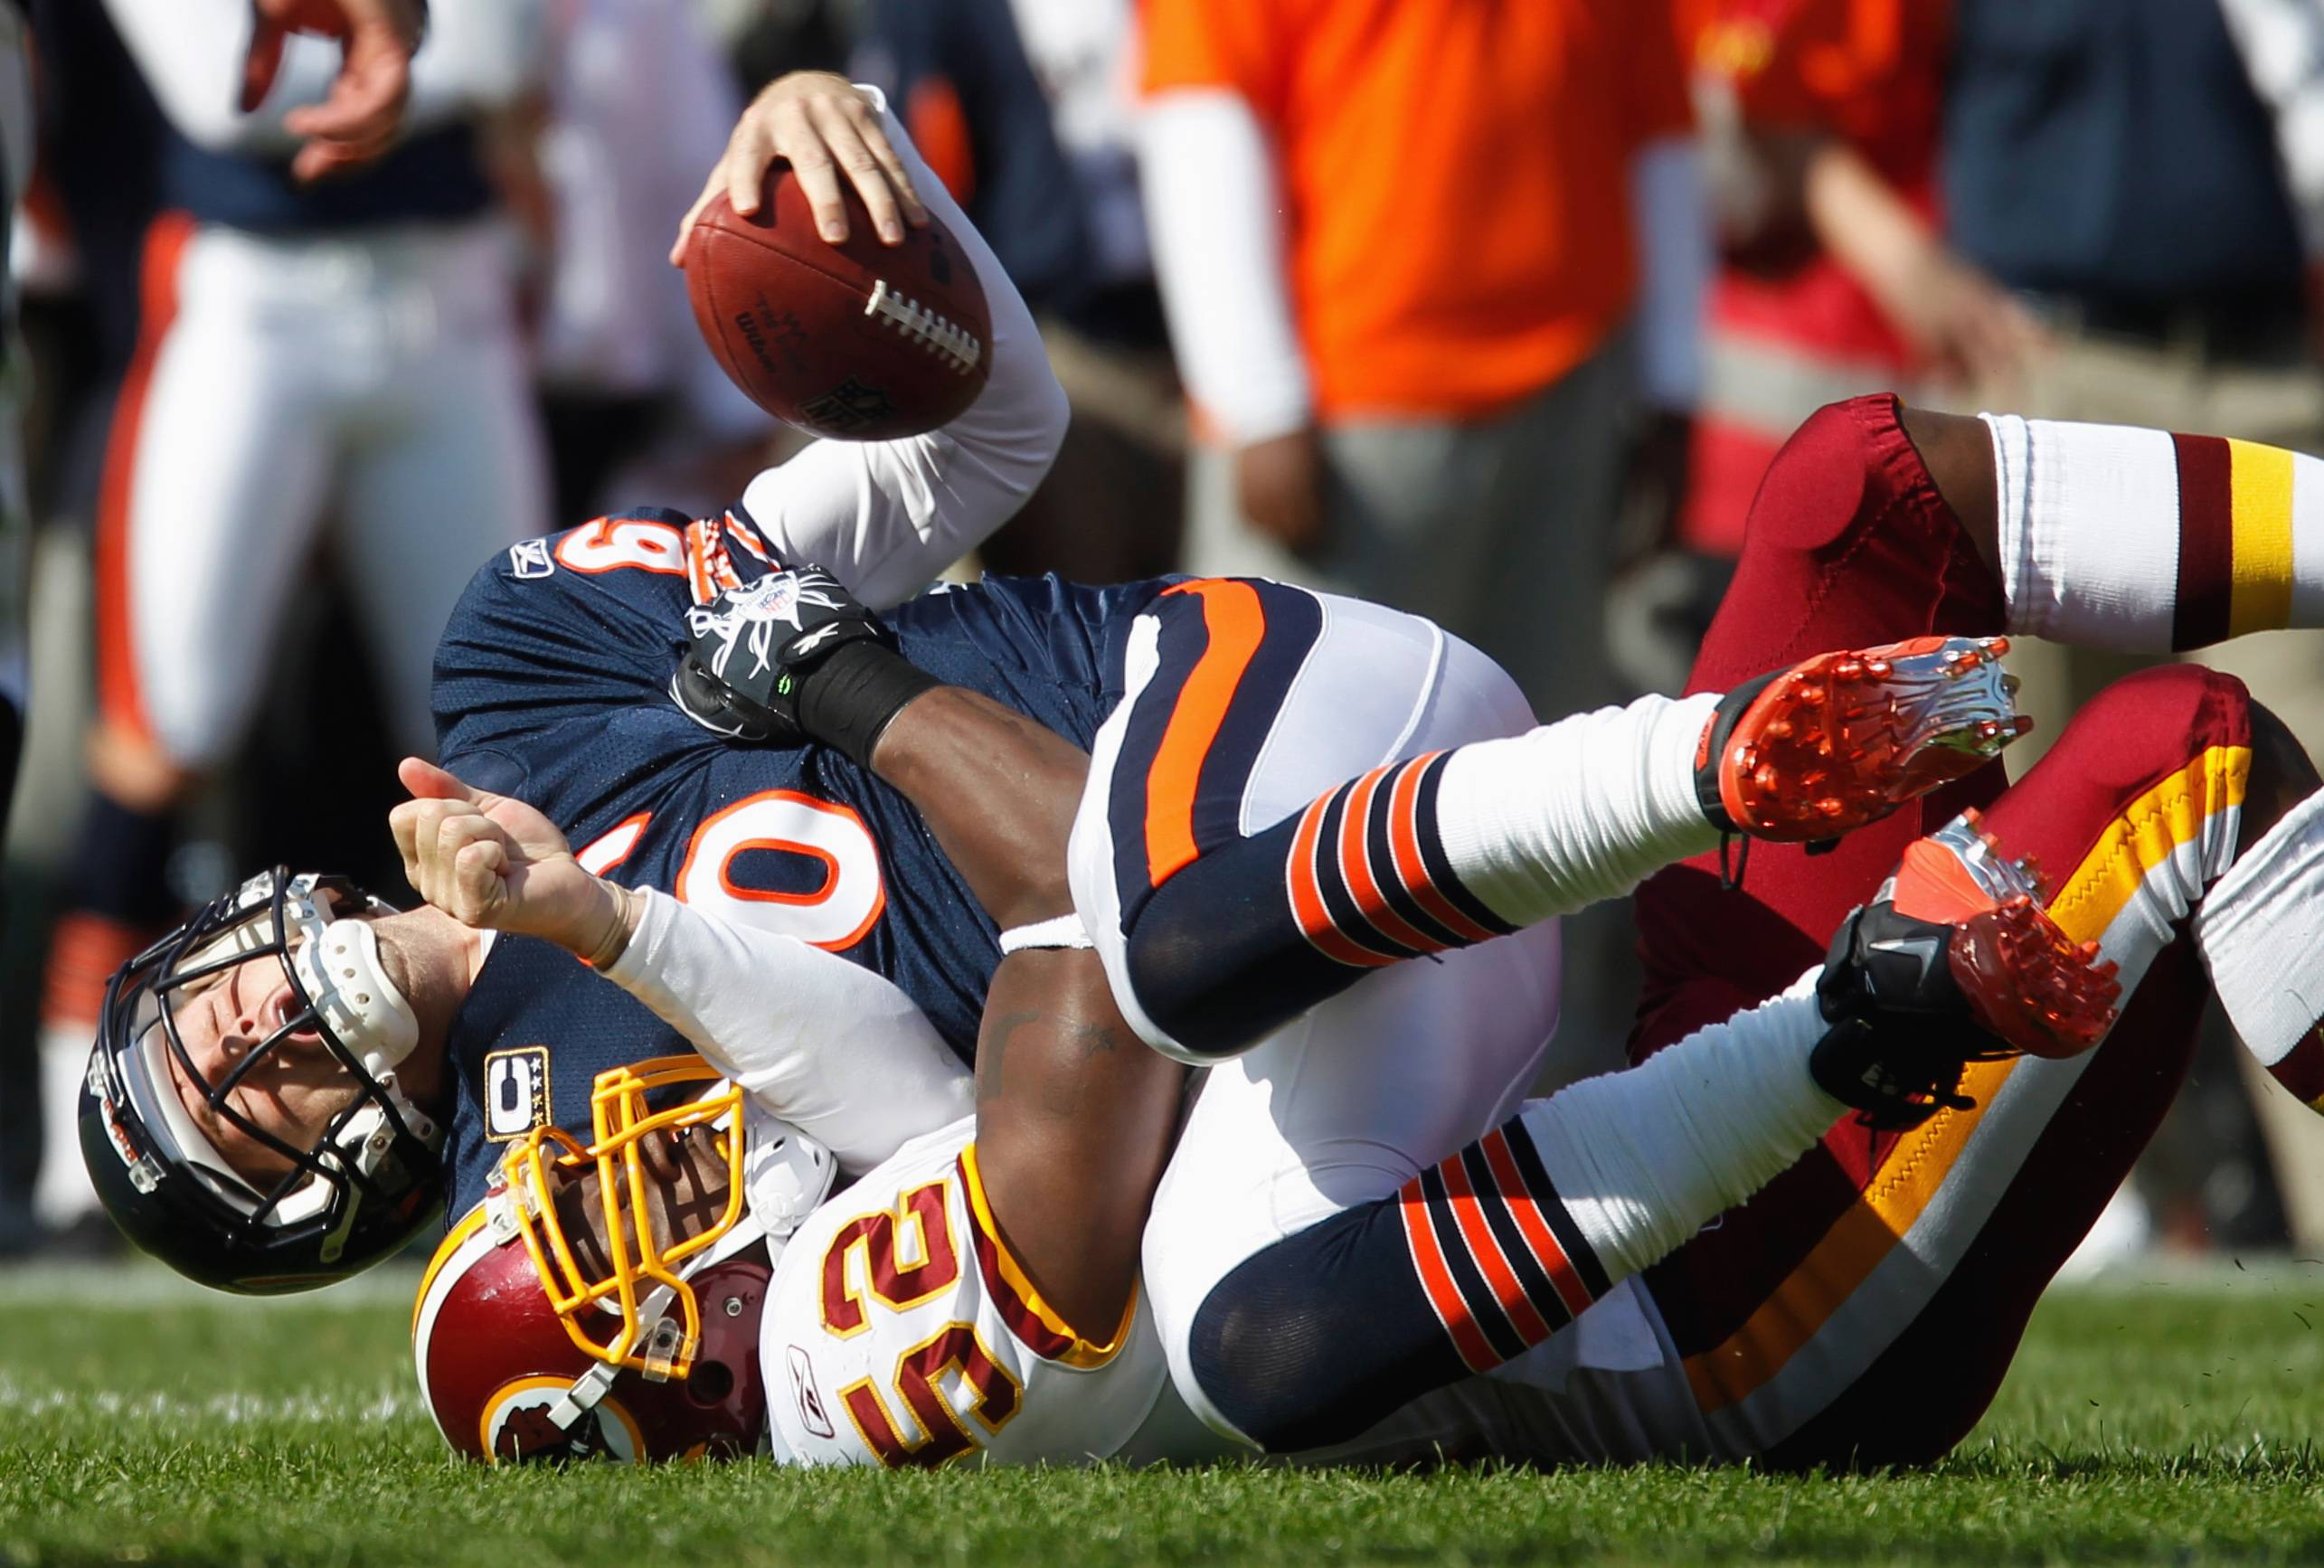 Bears quarterback Jay Cutler is sacked by Washington Redskins linebacker Rocky McIntosh.